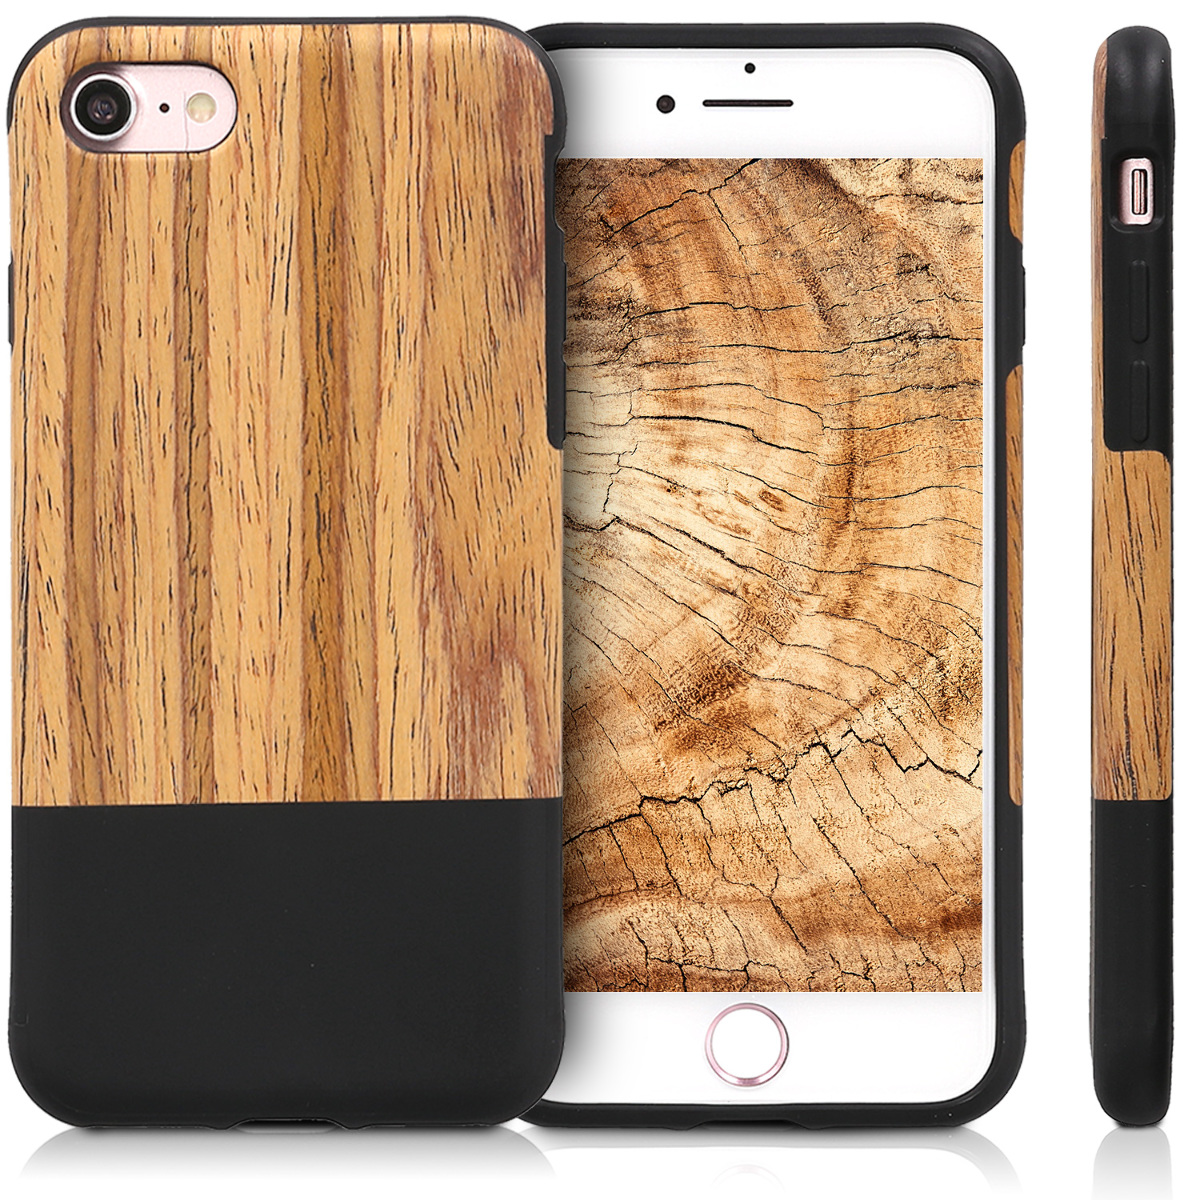 handyh lle f r apple iphone 7 8 h lle handy case holz cover silikon schutzh lle ebay. Black Bedroom Furniture Sets. Home Design Ideas